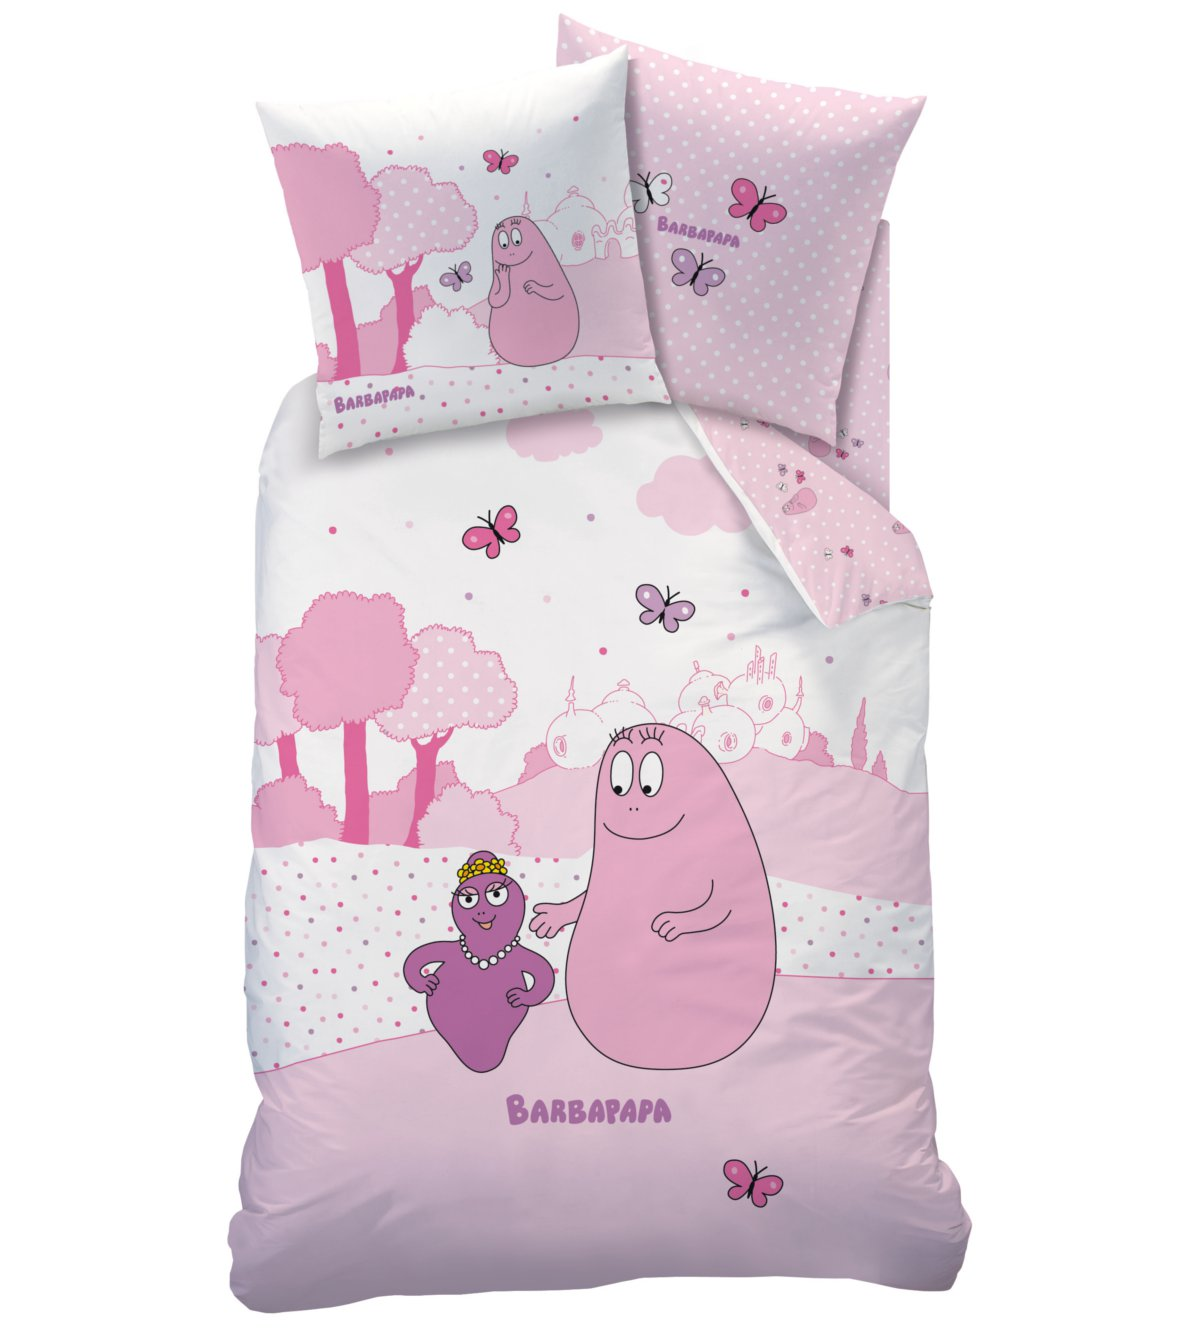 housse de couette barbapapa parure de lit 140 x 200 cm pink world barbapapa decokids. Black Bedroom Furniture Sets. Home Design Ideas